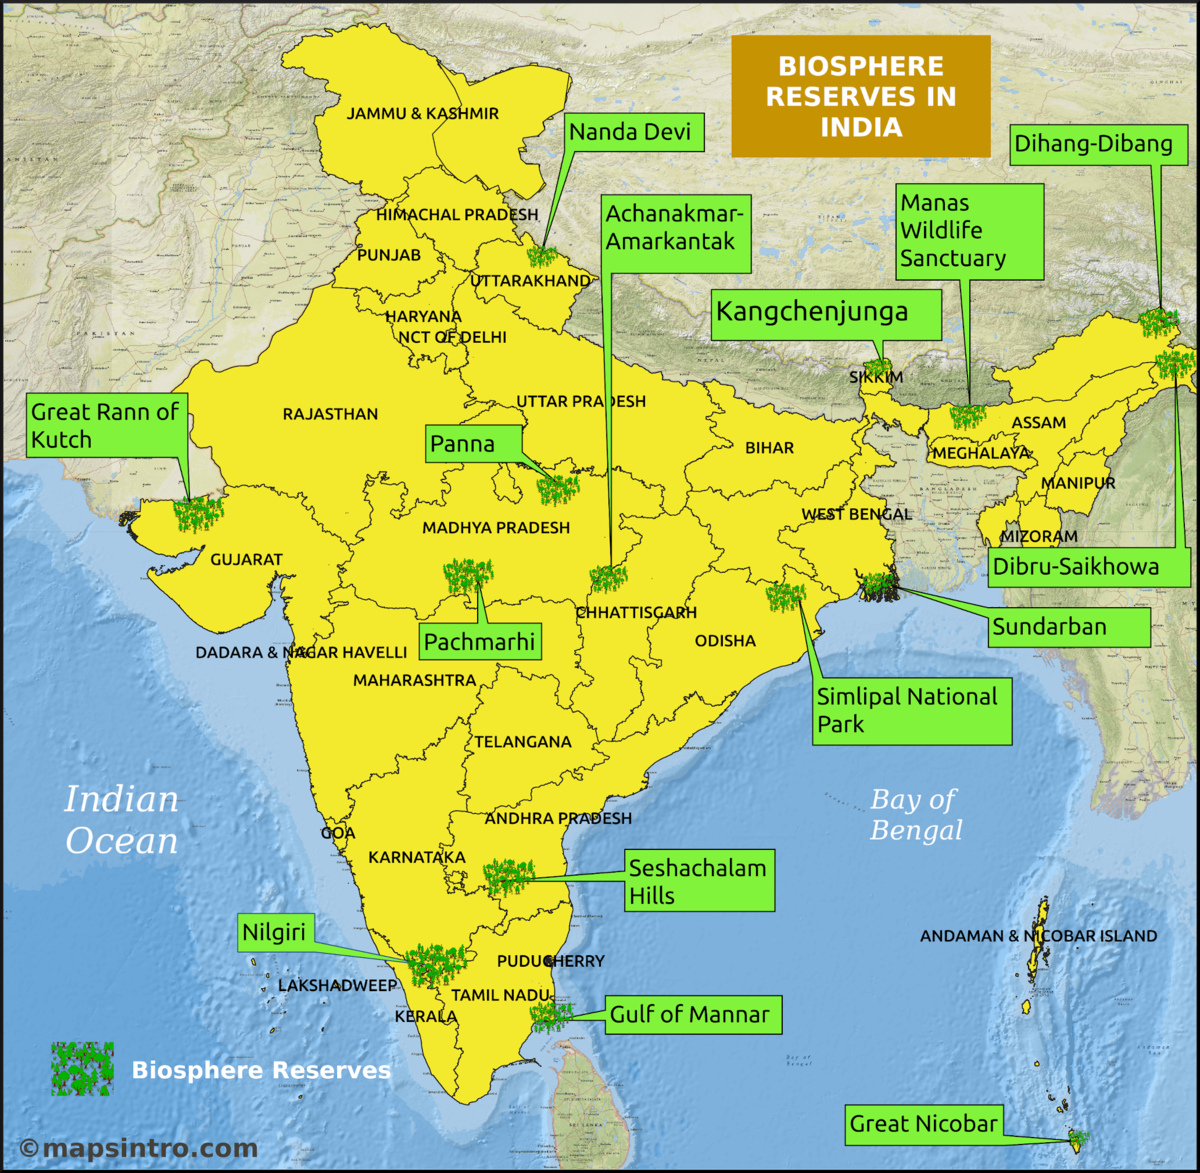 File:Biosphere Reserves in India.png - Wikimedia Commons